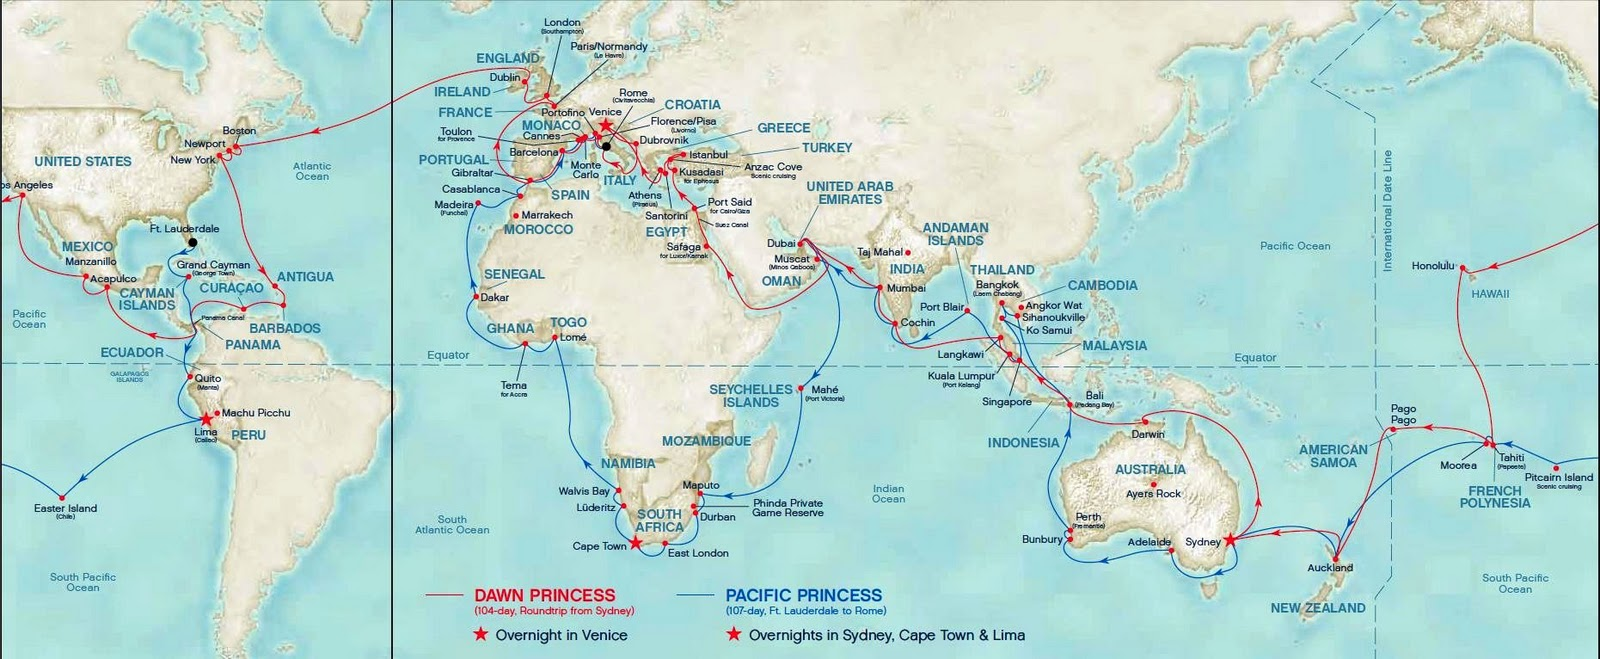 World Cruise 2011 Cruise Map